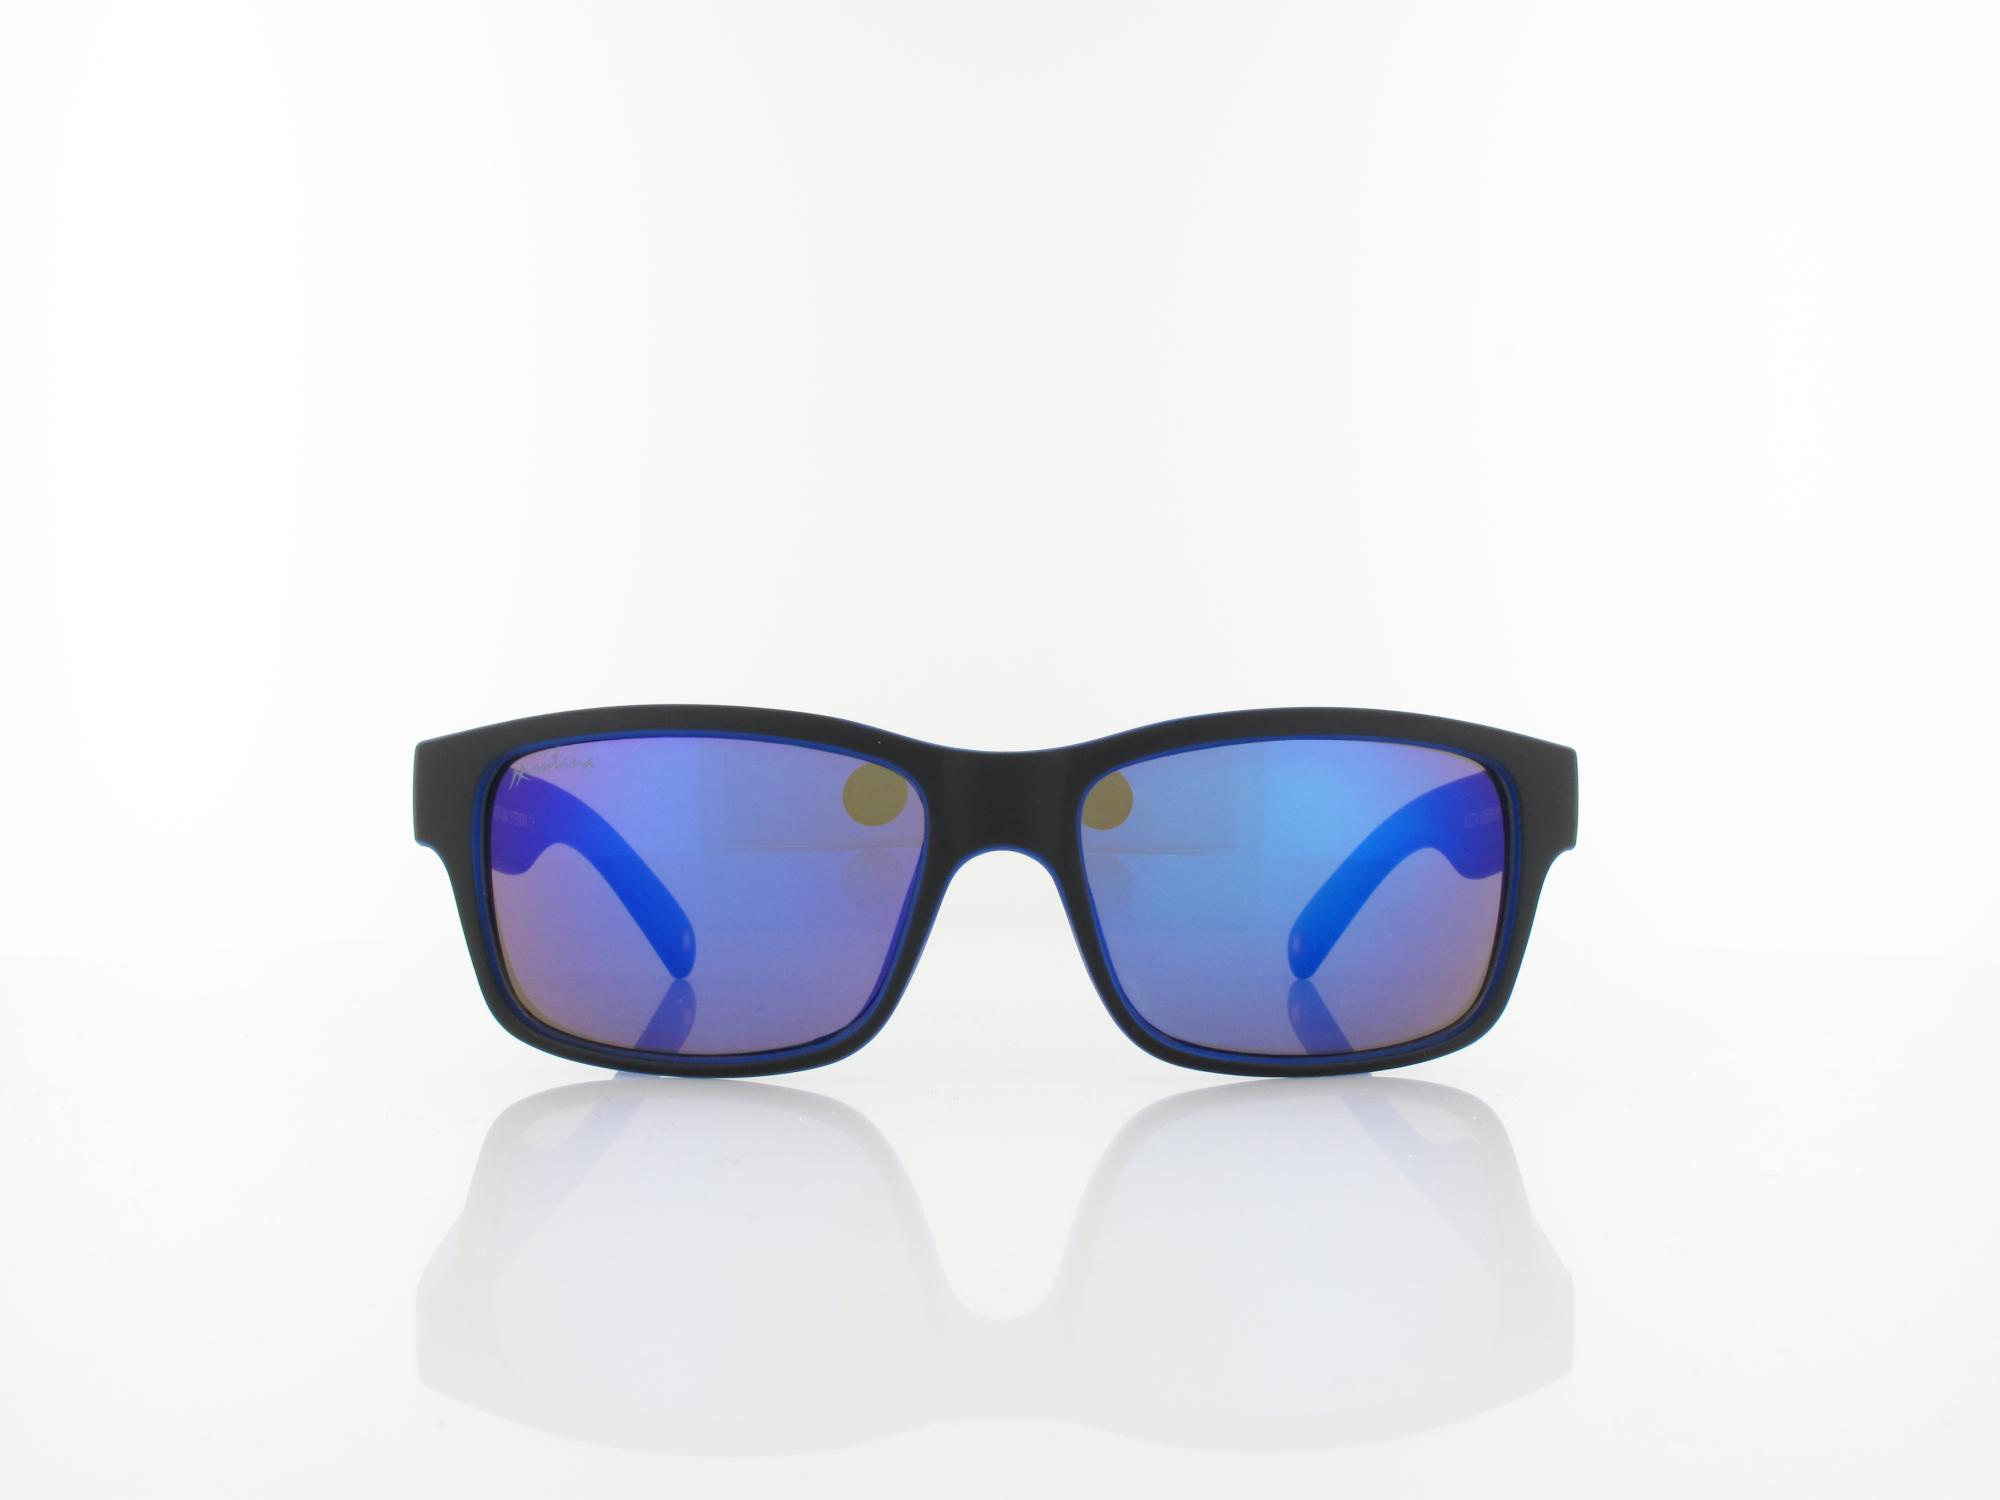 Brilando | MS27 A 55 | black blue / blue mirror